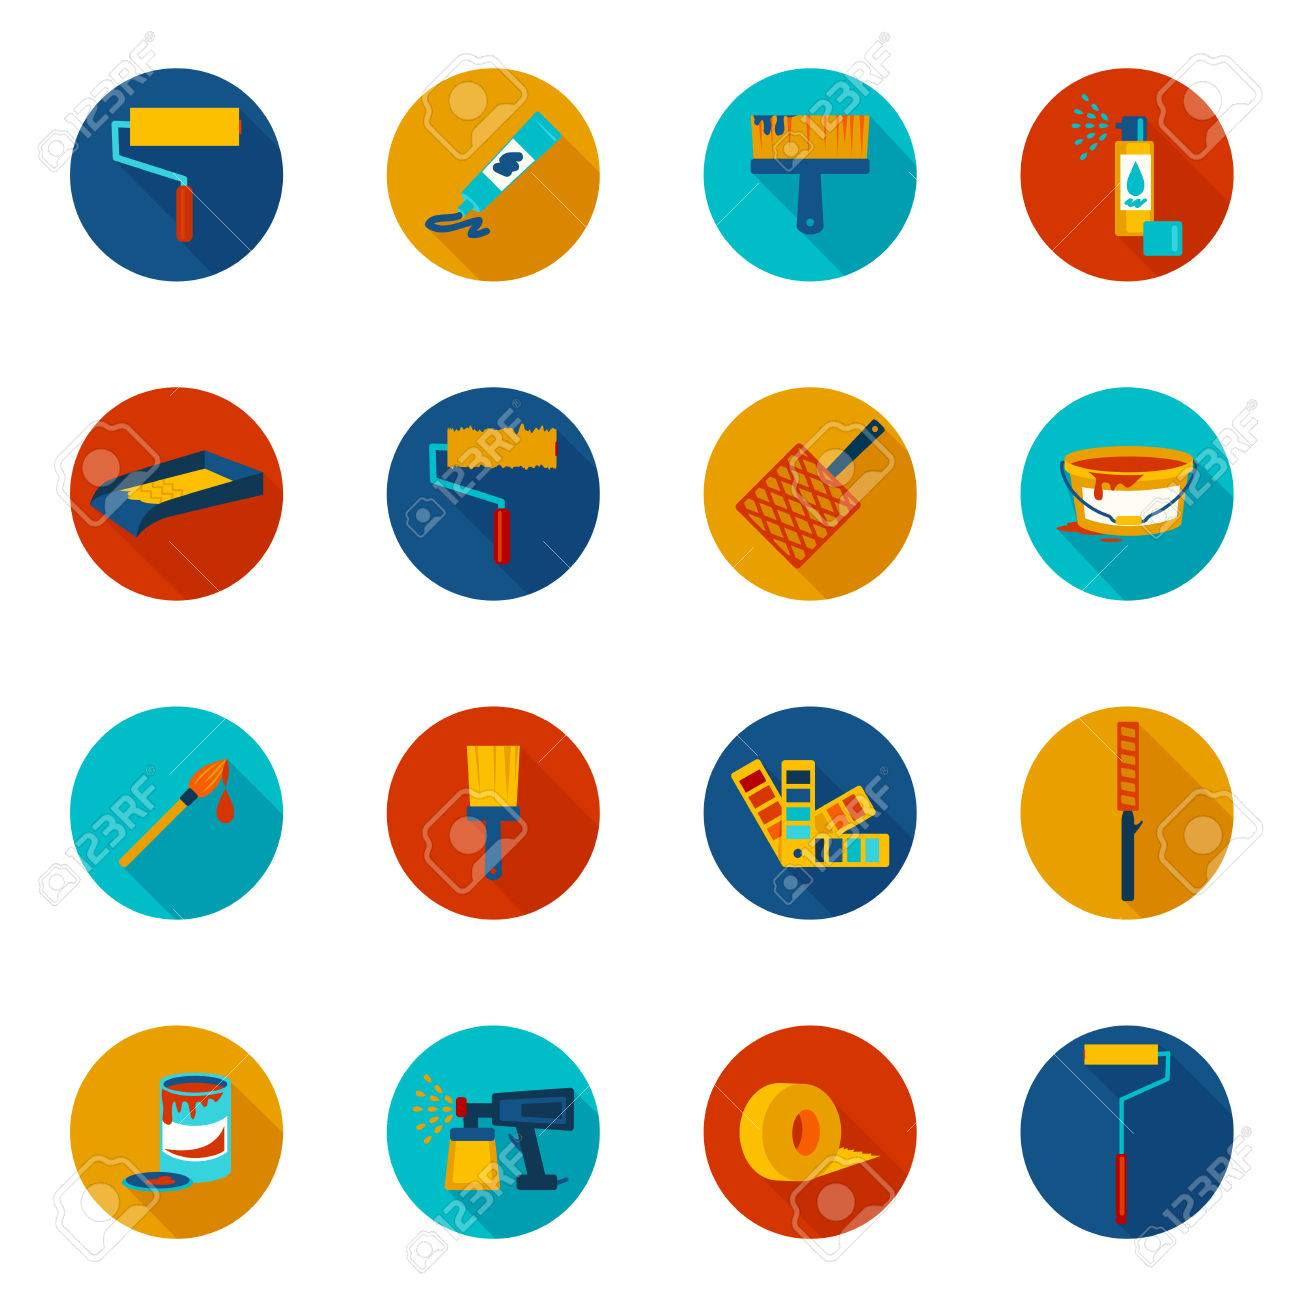 6 366 house painter stock illustrations cliparts and royalty free